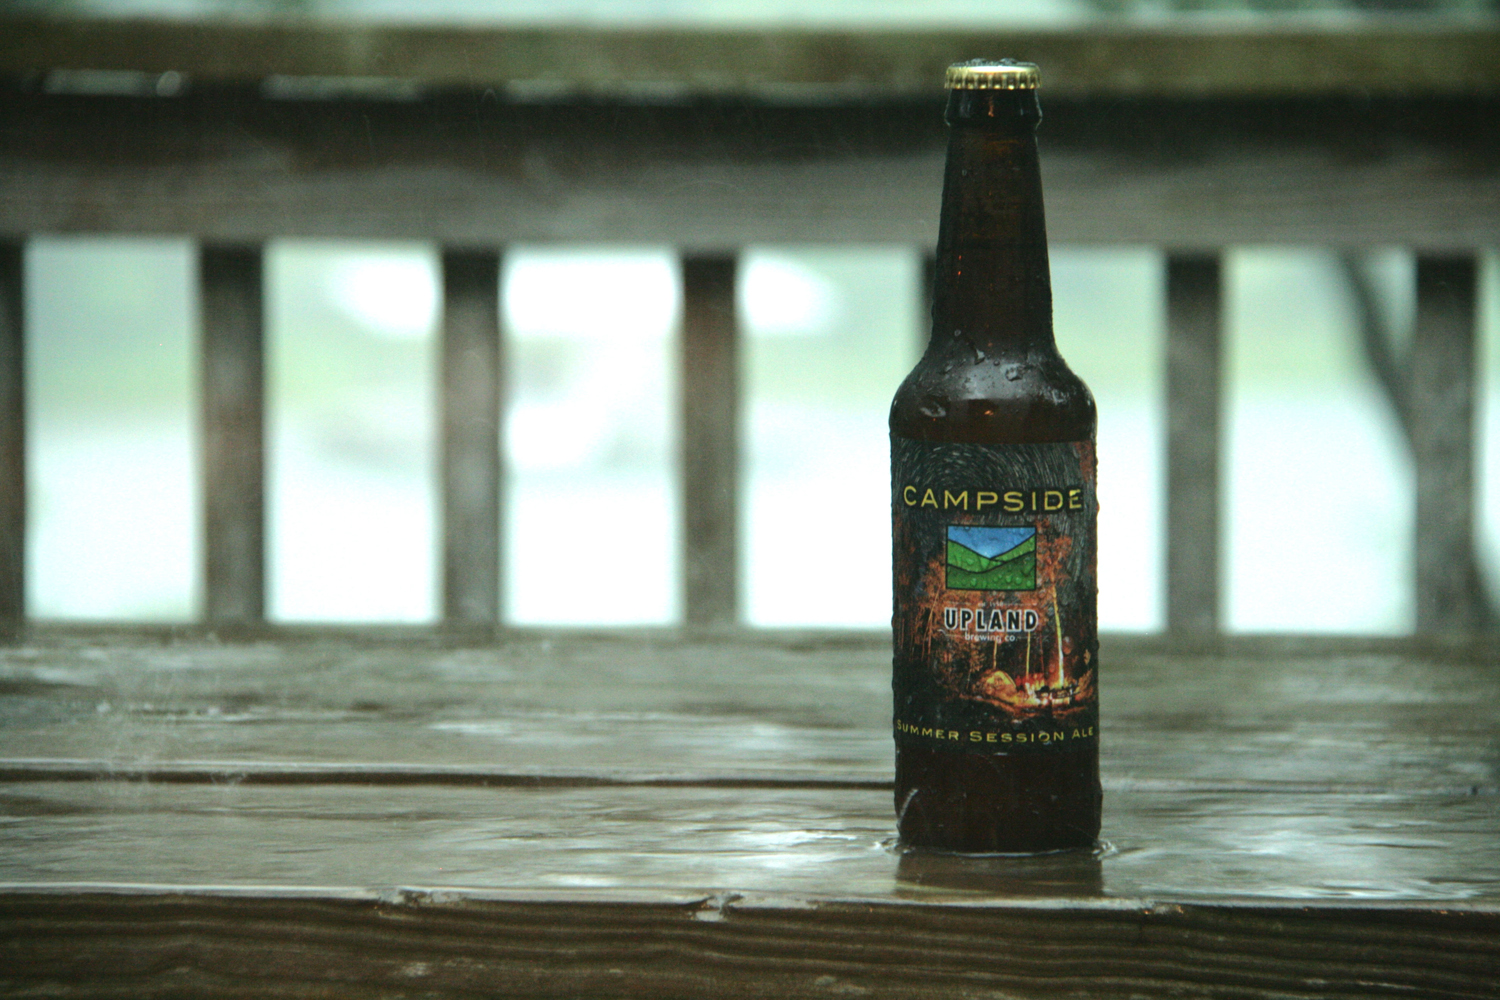 Campside is a good summer seasonal craft camping beer selection.